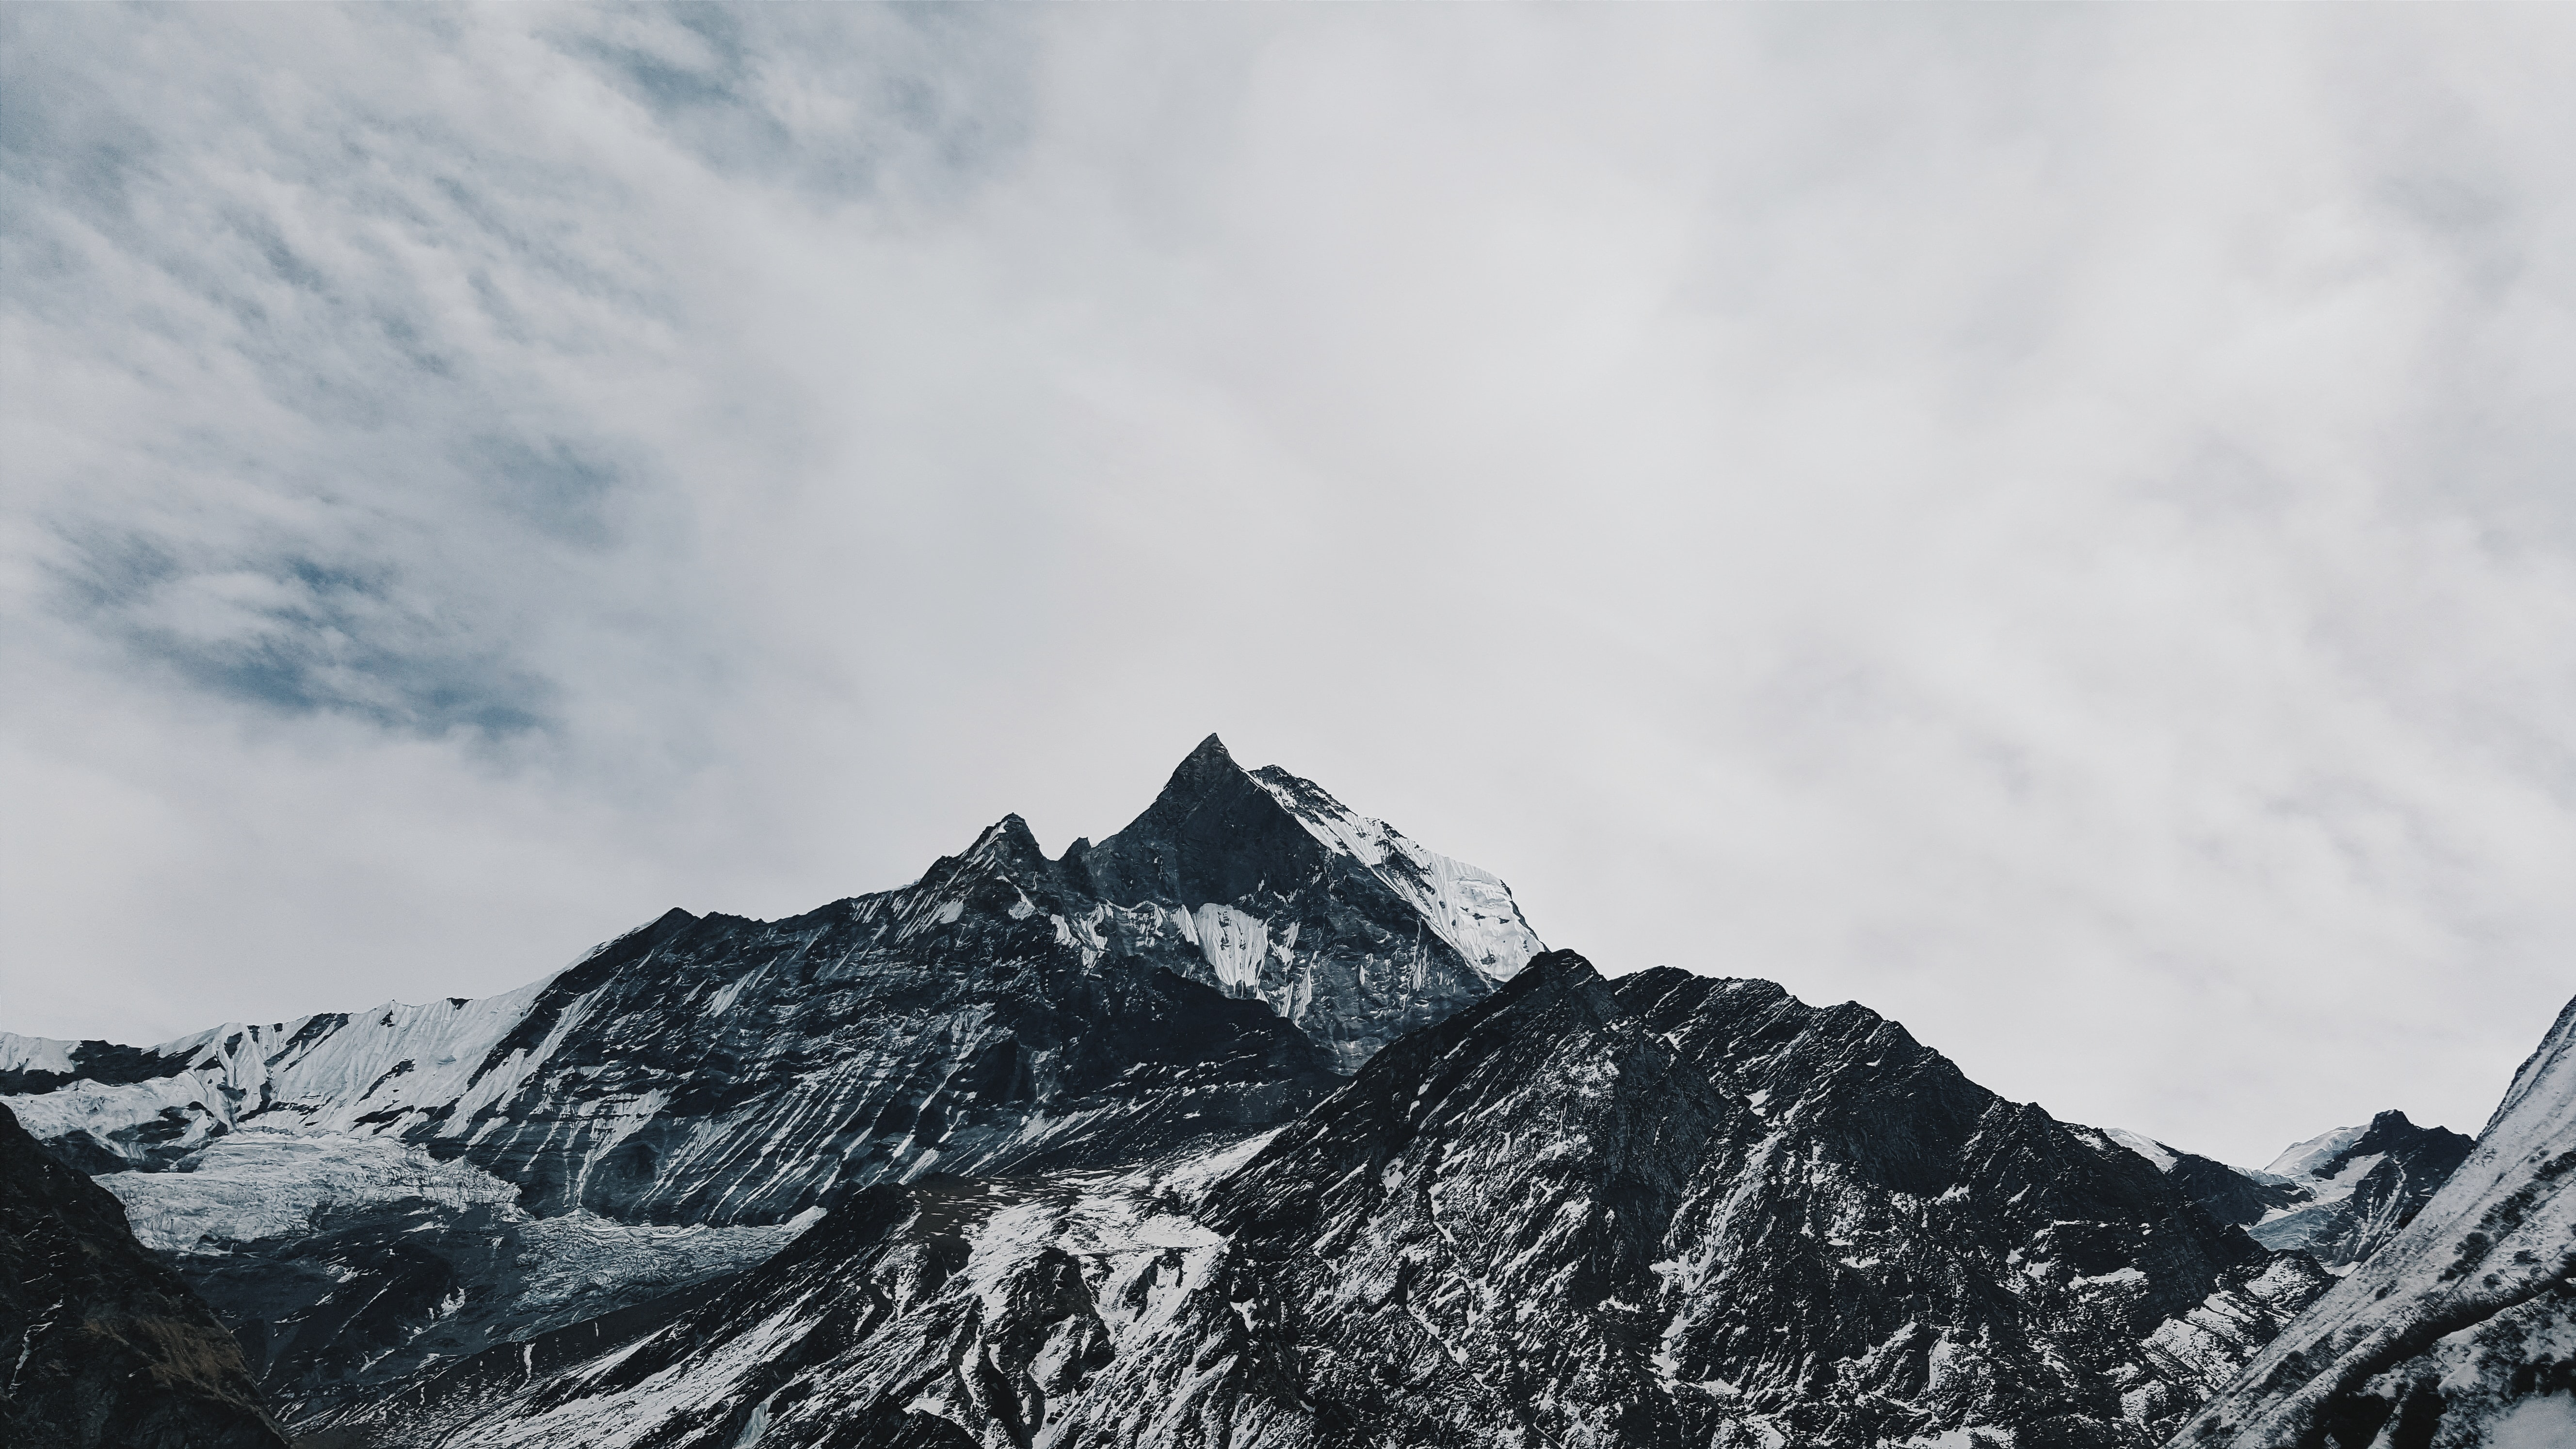 snow cover mountain during white cloudy sky